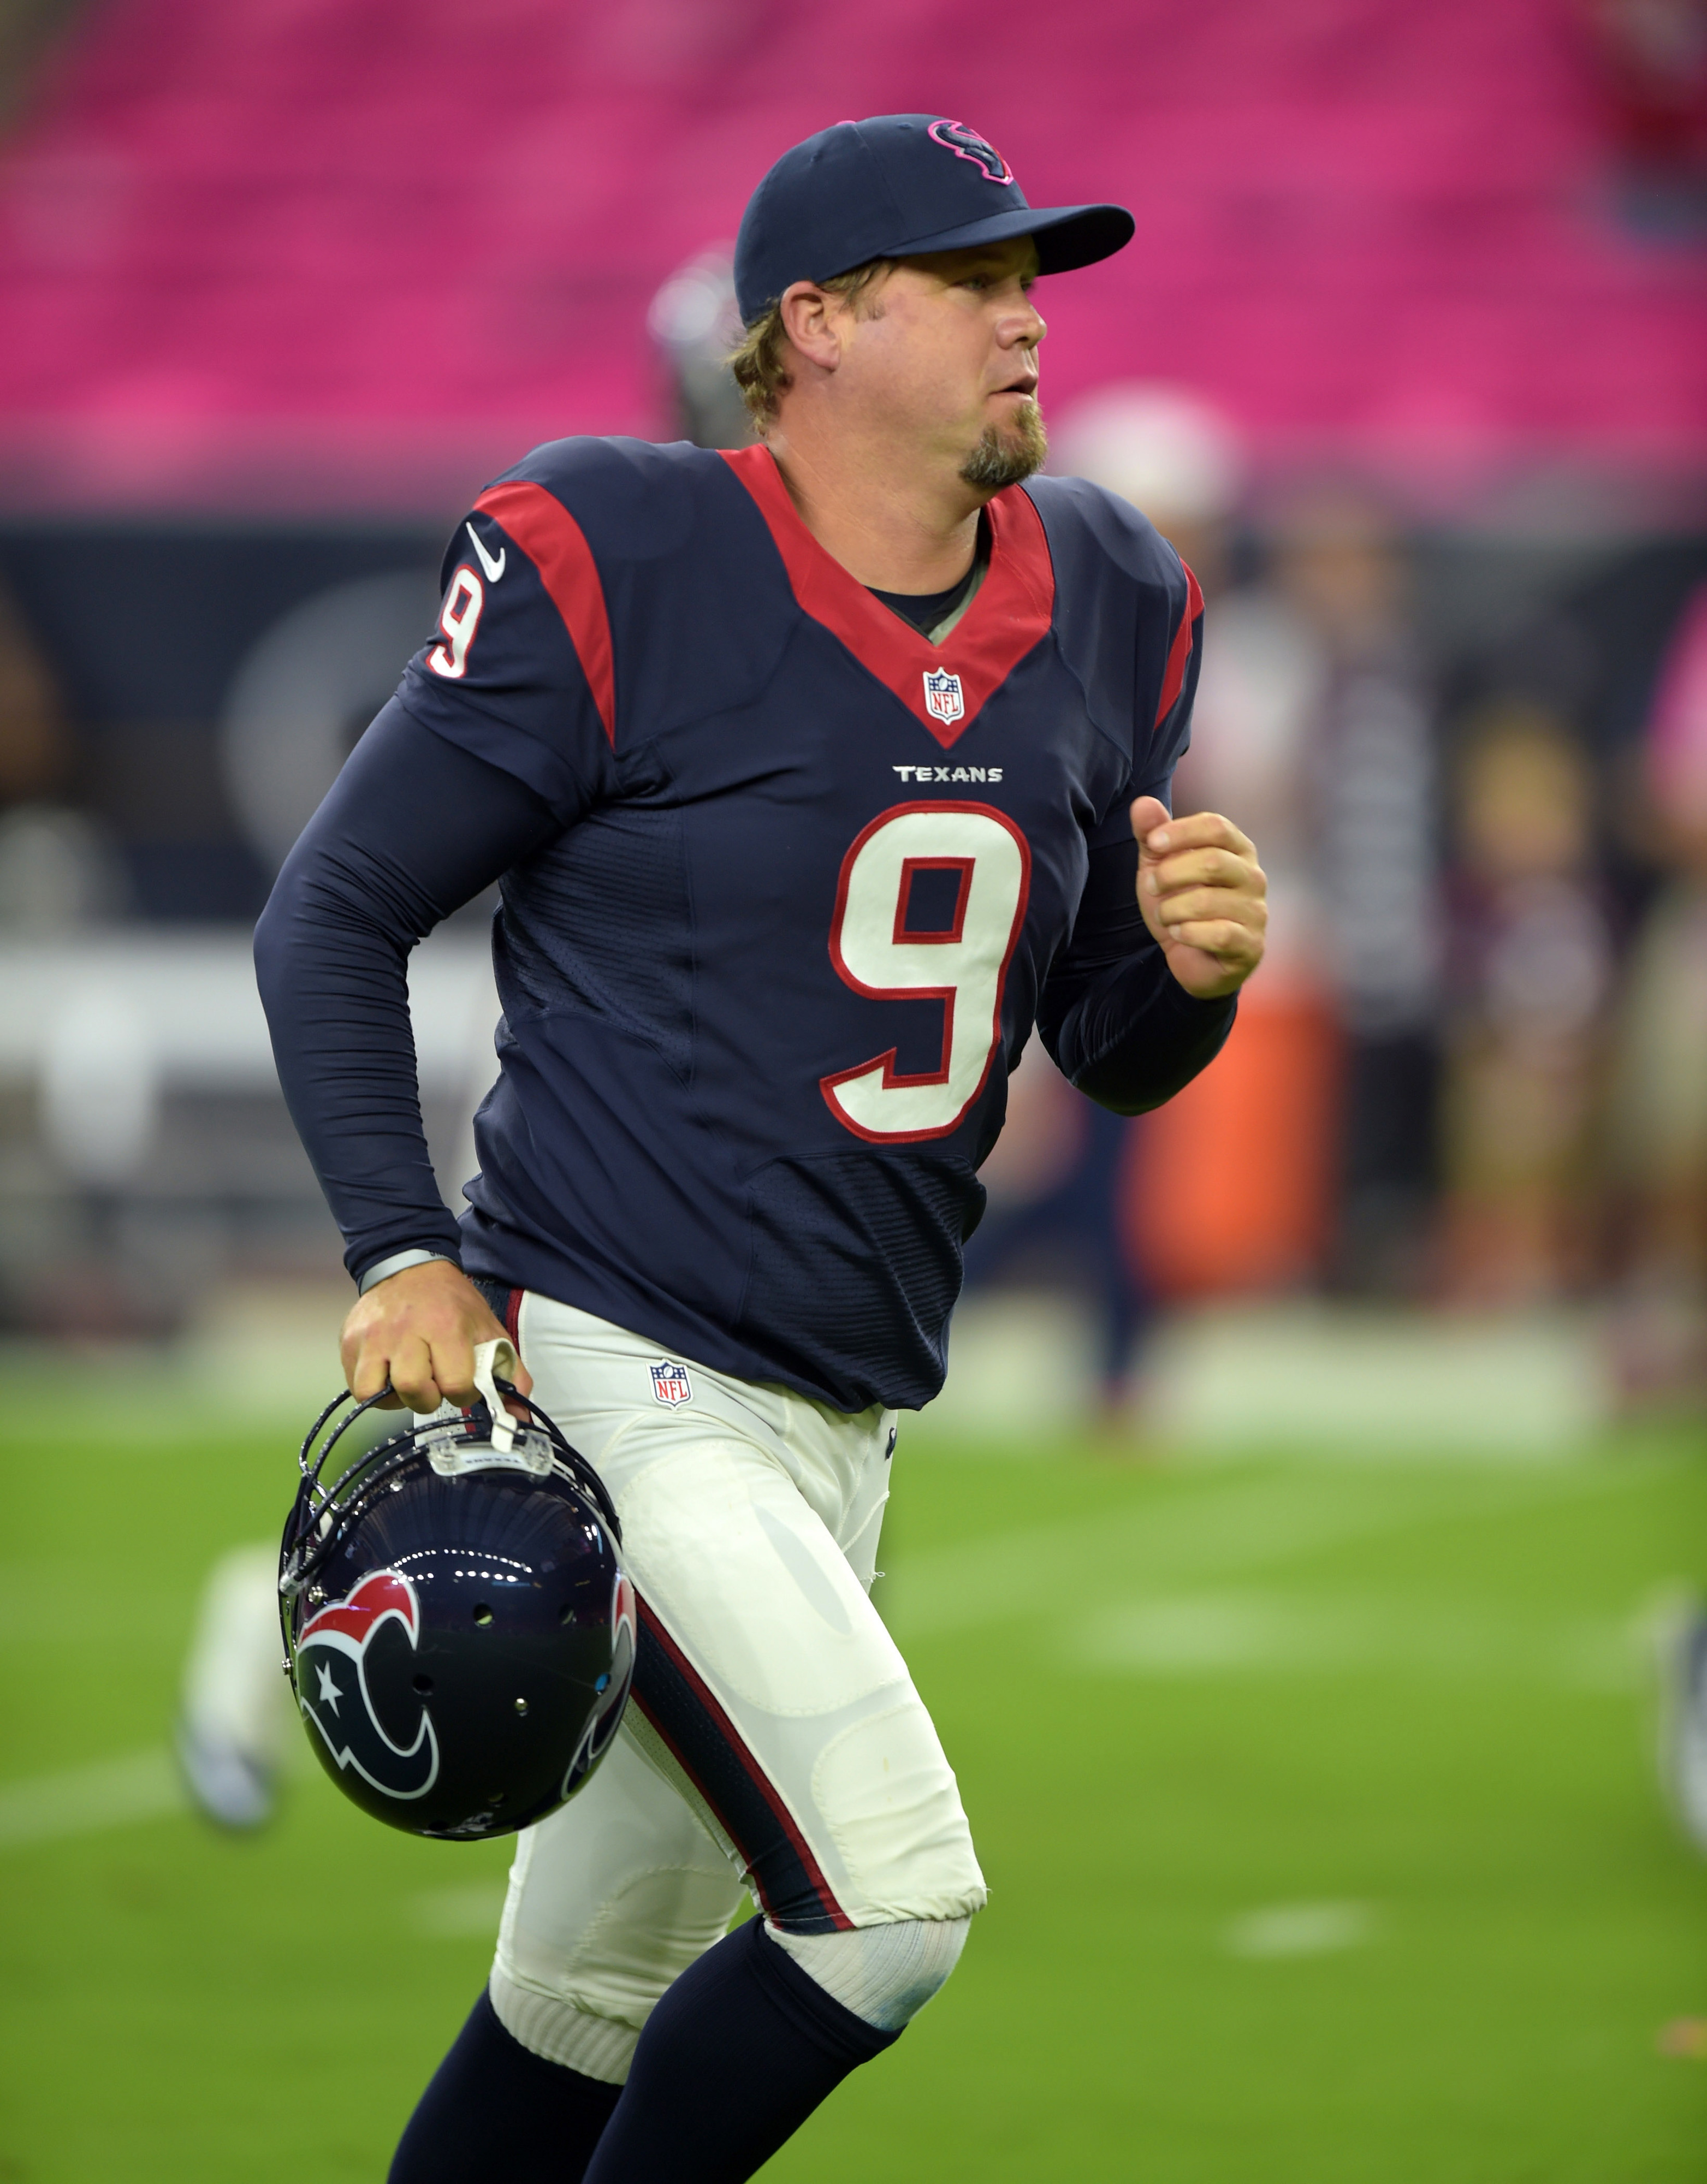 No matter what challenges we may face, we can always count on Shane Lechler.